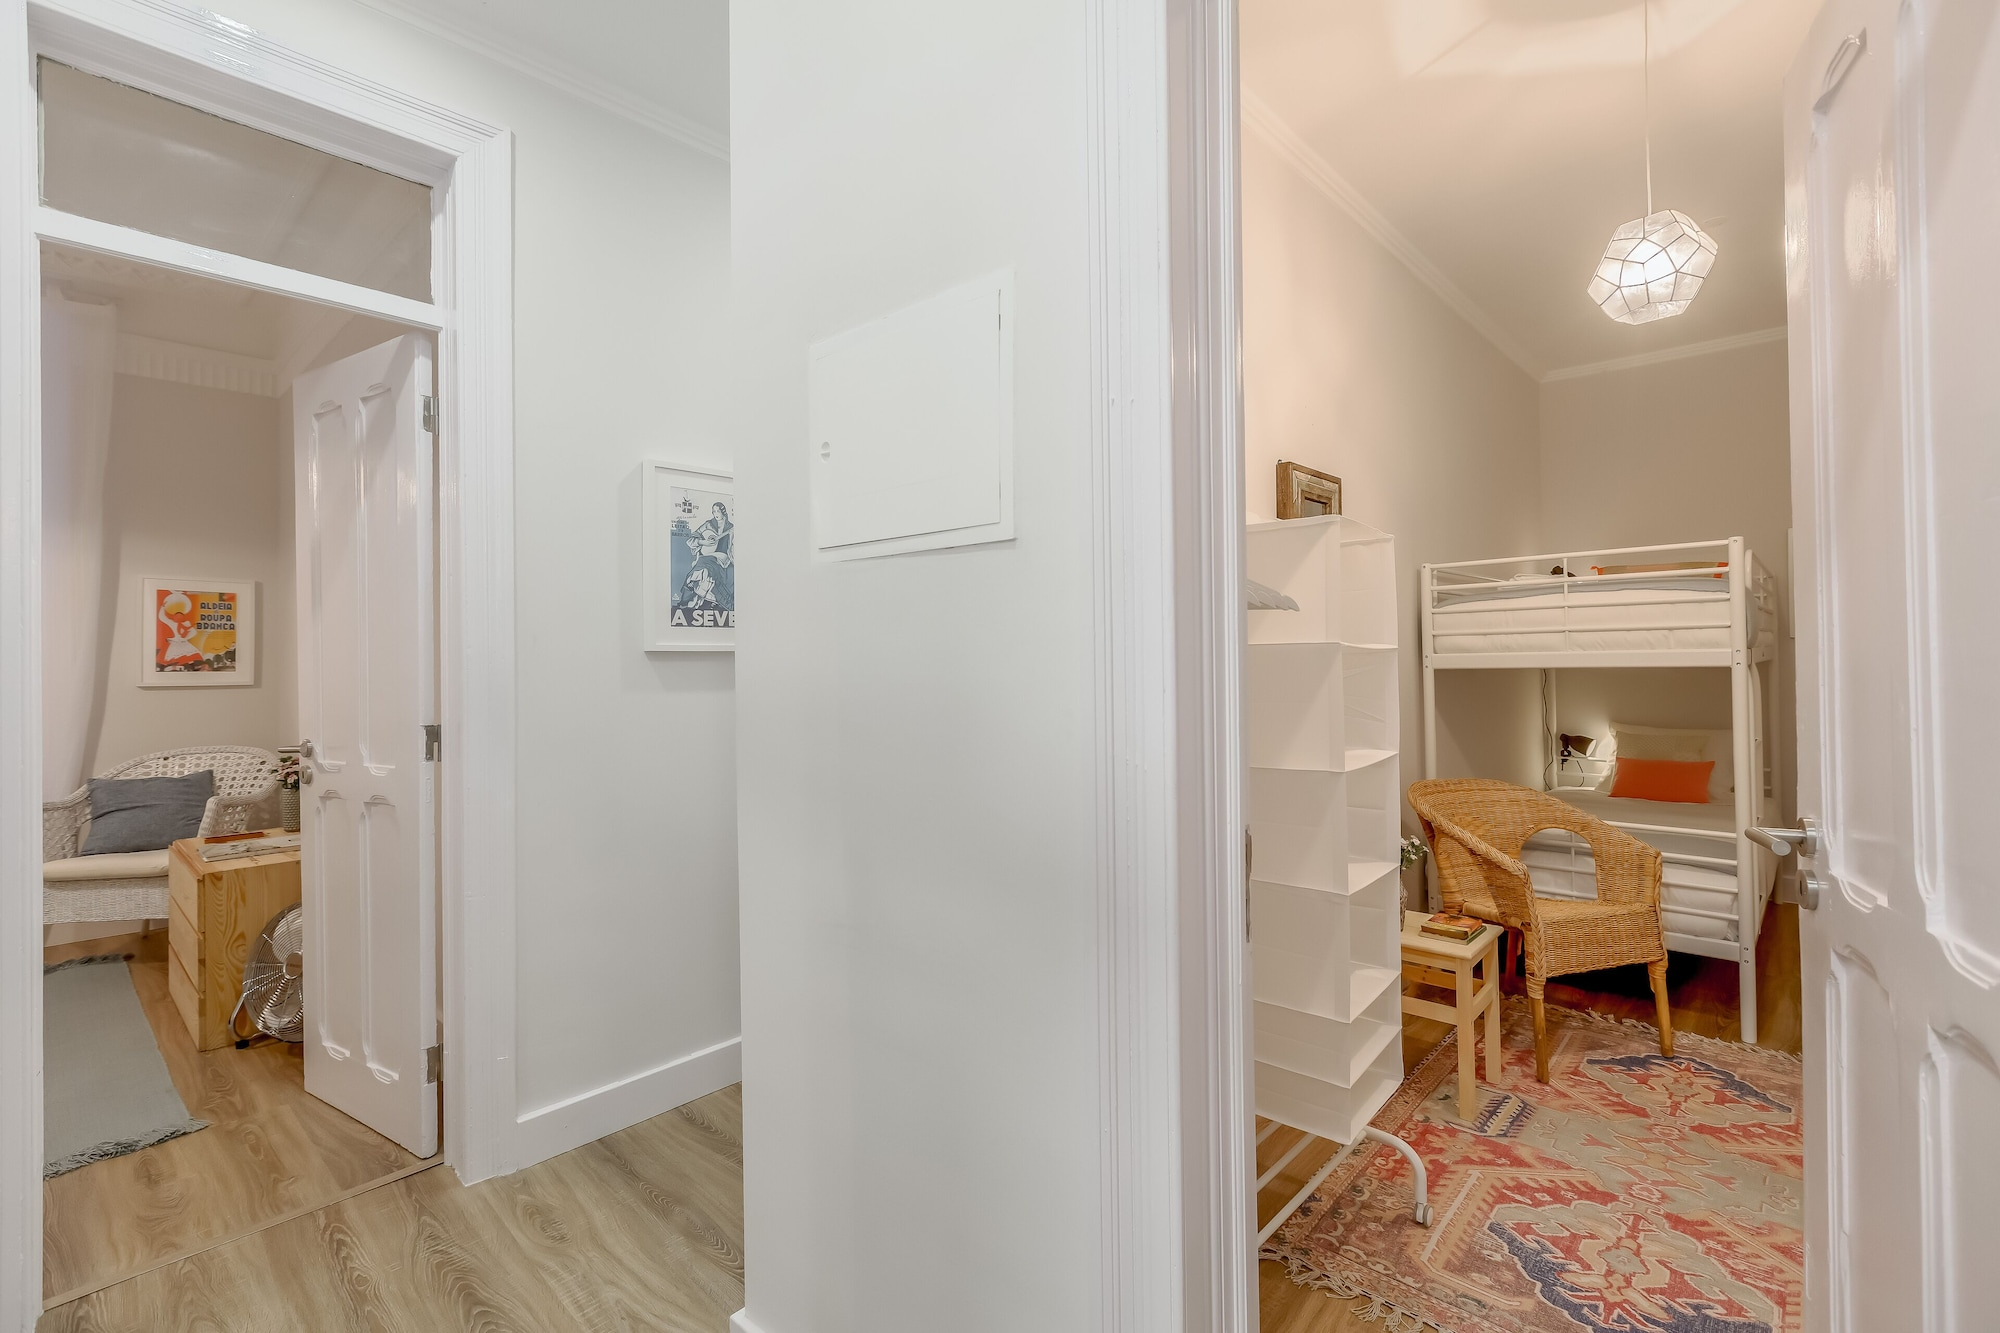 Baixa 3 Bedrooms Apartment with Patio + Free Pick Up By TimeCooler, Lisboa